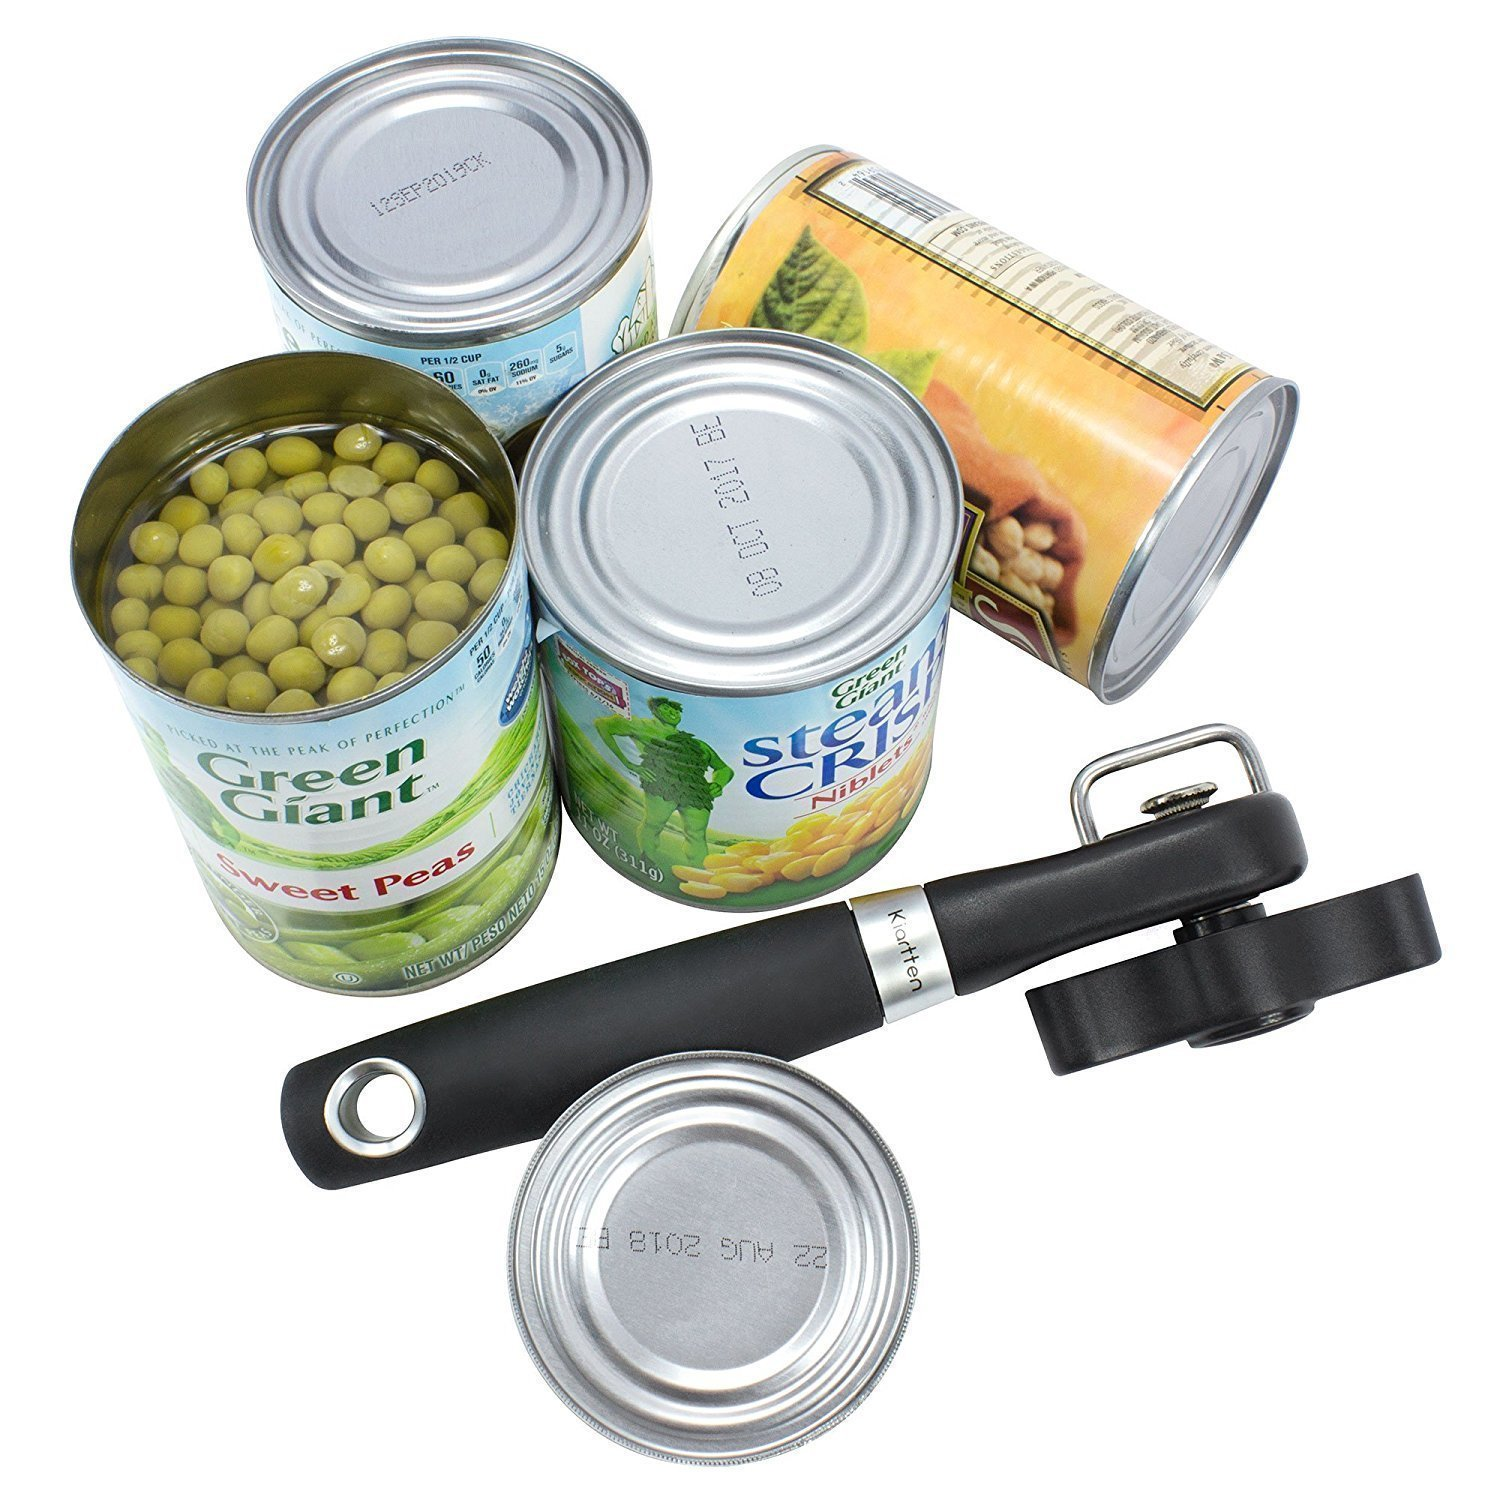 Smooth Edge Can Opener - Can Opener Manual-Safety Feature Prevents Sharp Edges and Cuts - Ergonomic Soft Grips Handle - Lifetime Refund Or Replacement Guarantee - Food Grade Stainless Steel by housewearall (Image #3)